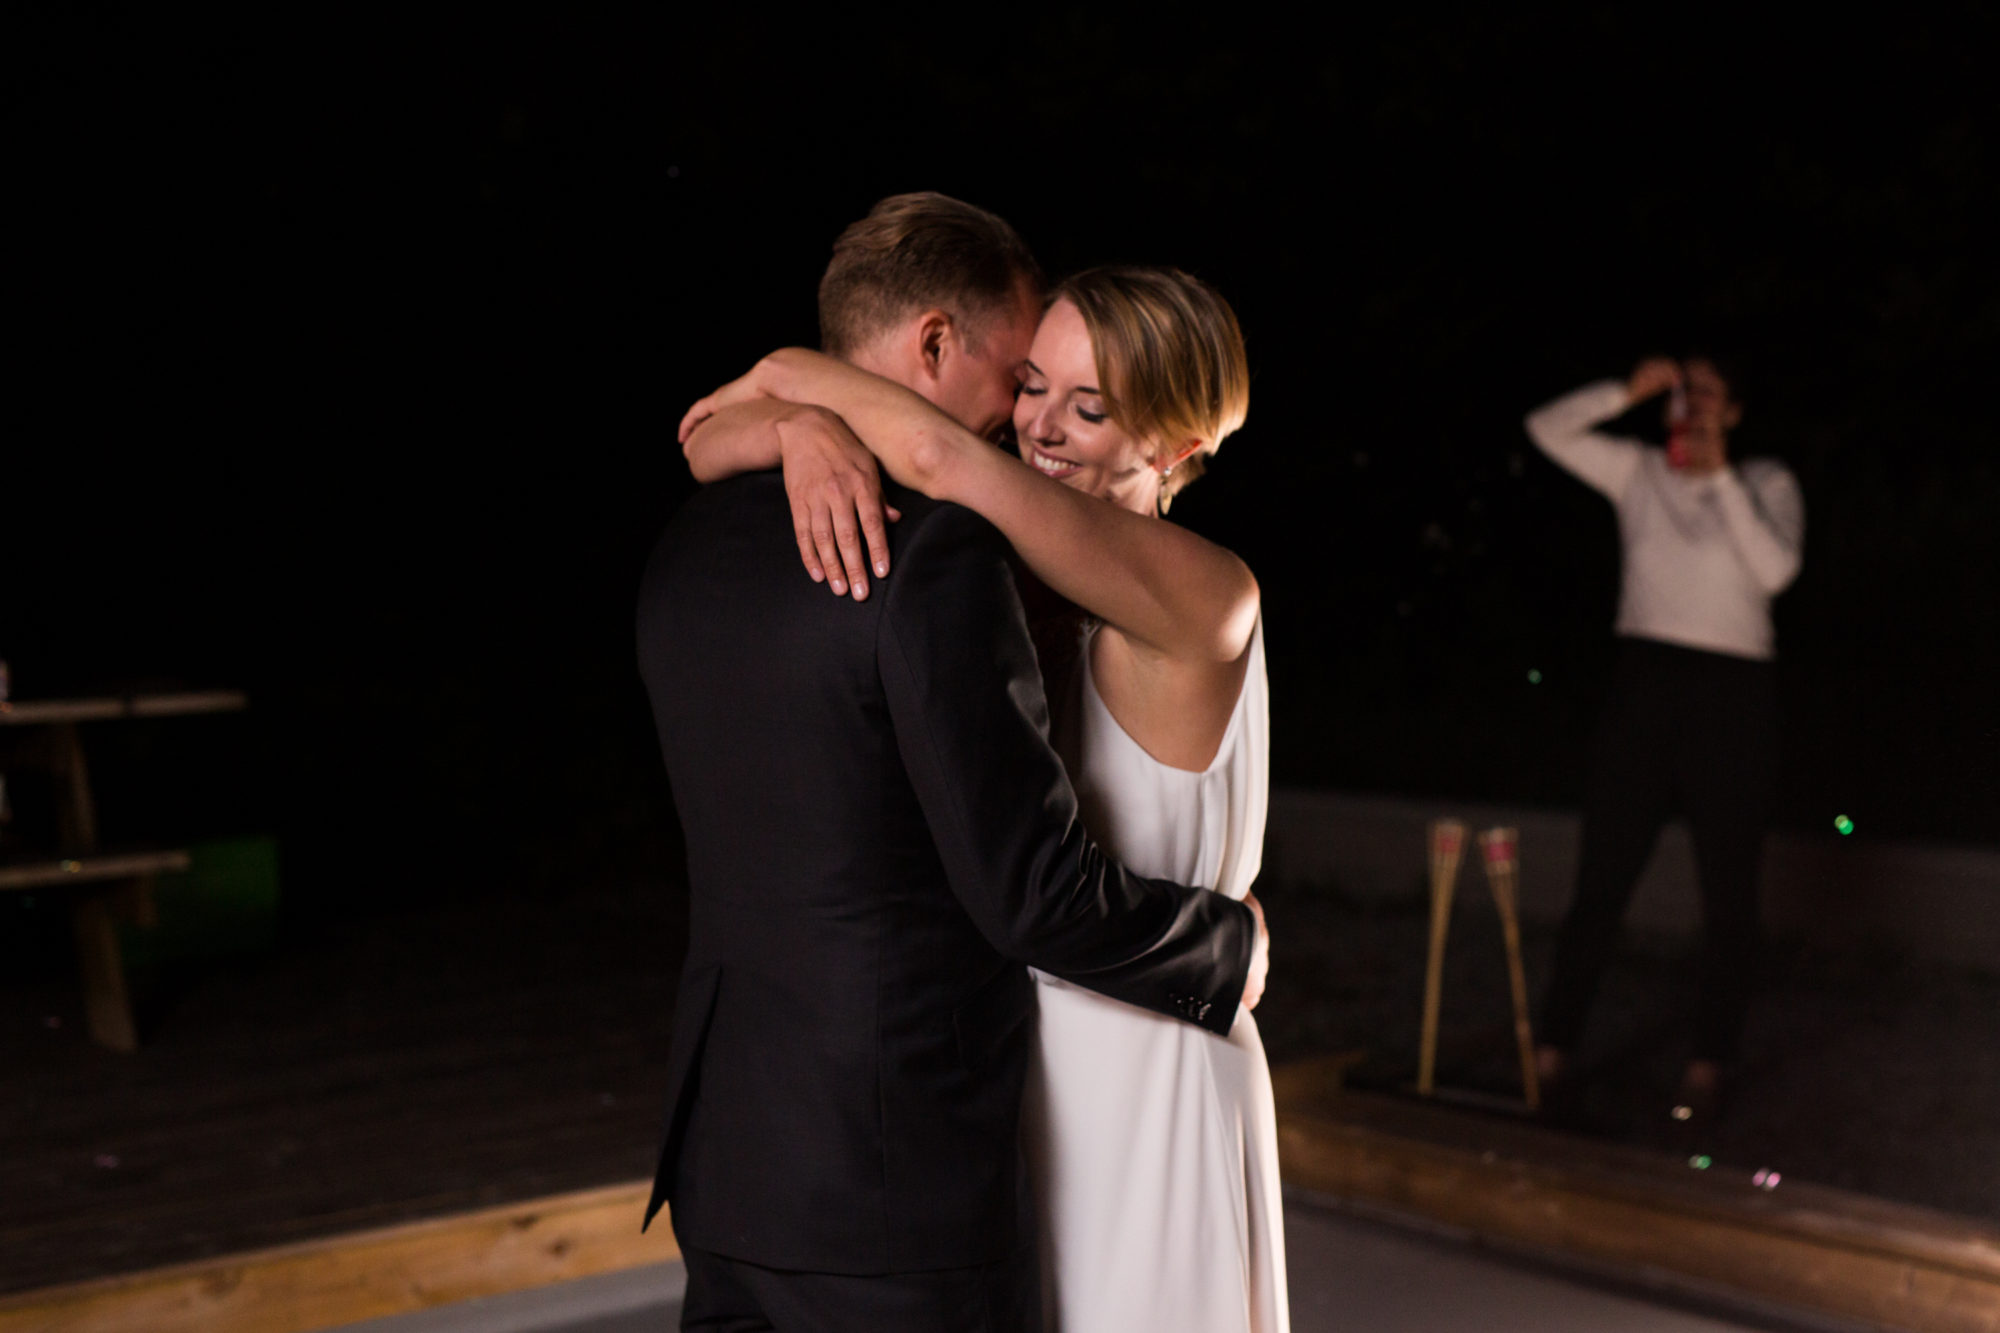 First Dance Hope Wedding British Columbia American Creek Lodge Zsuzsi Pal Photography